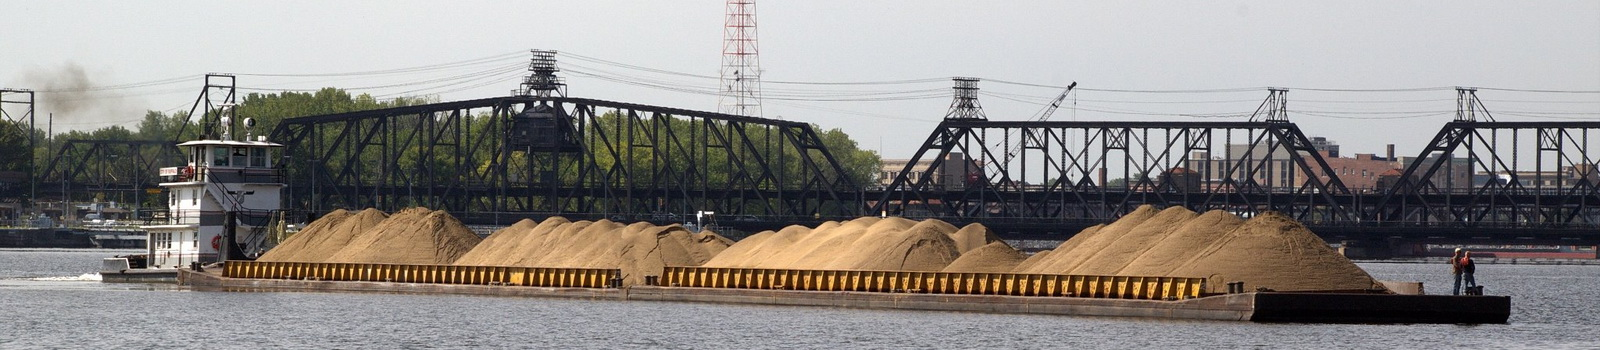 Sand-Barge